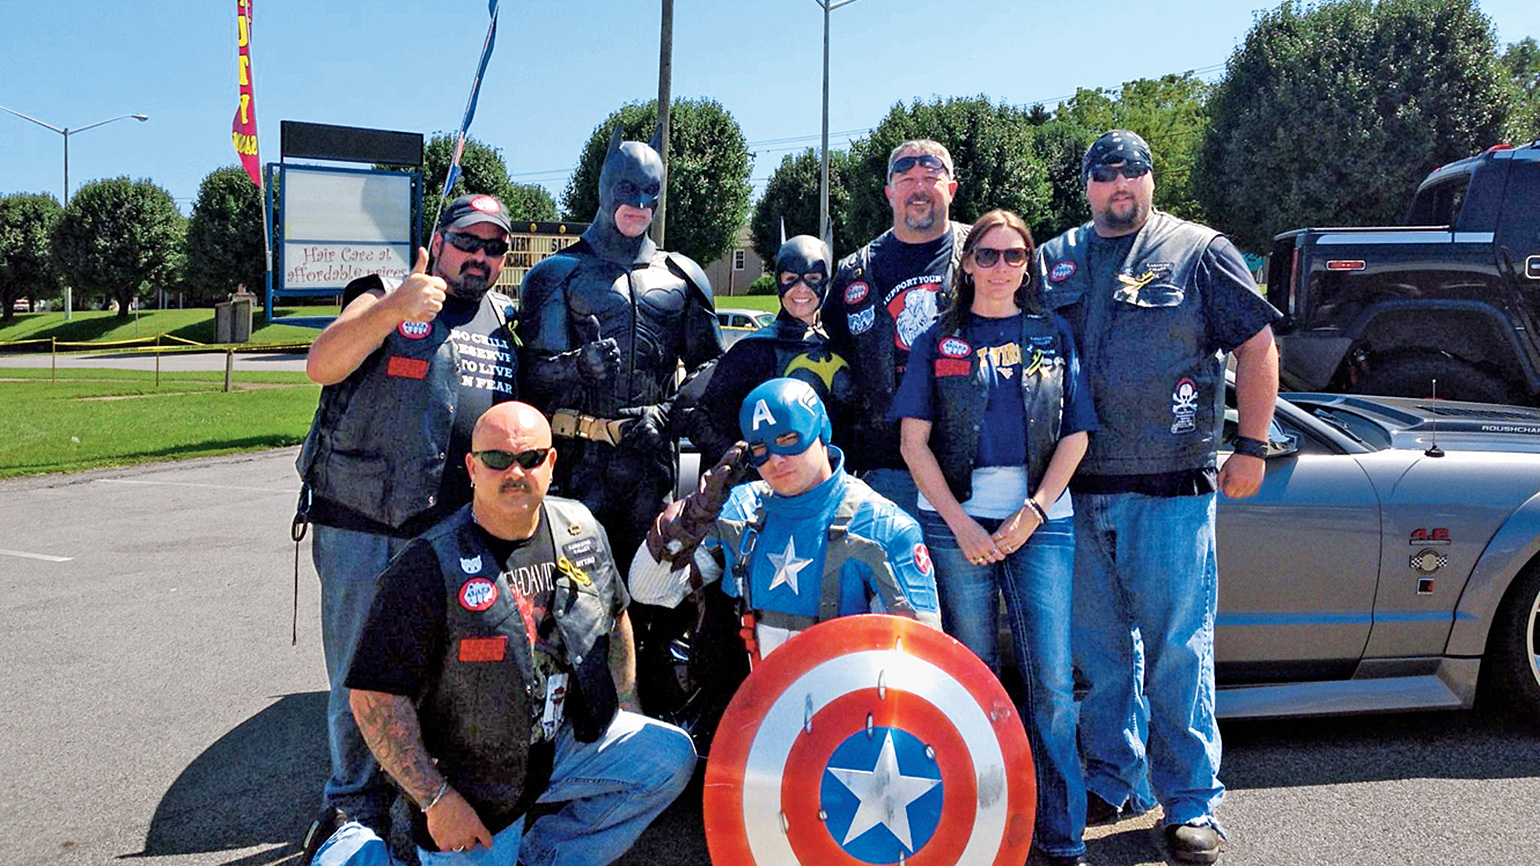 Troy, John and John's wife, Ronda, with Bikers Against Child Abuse